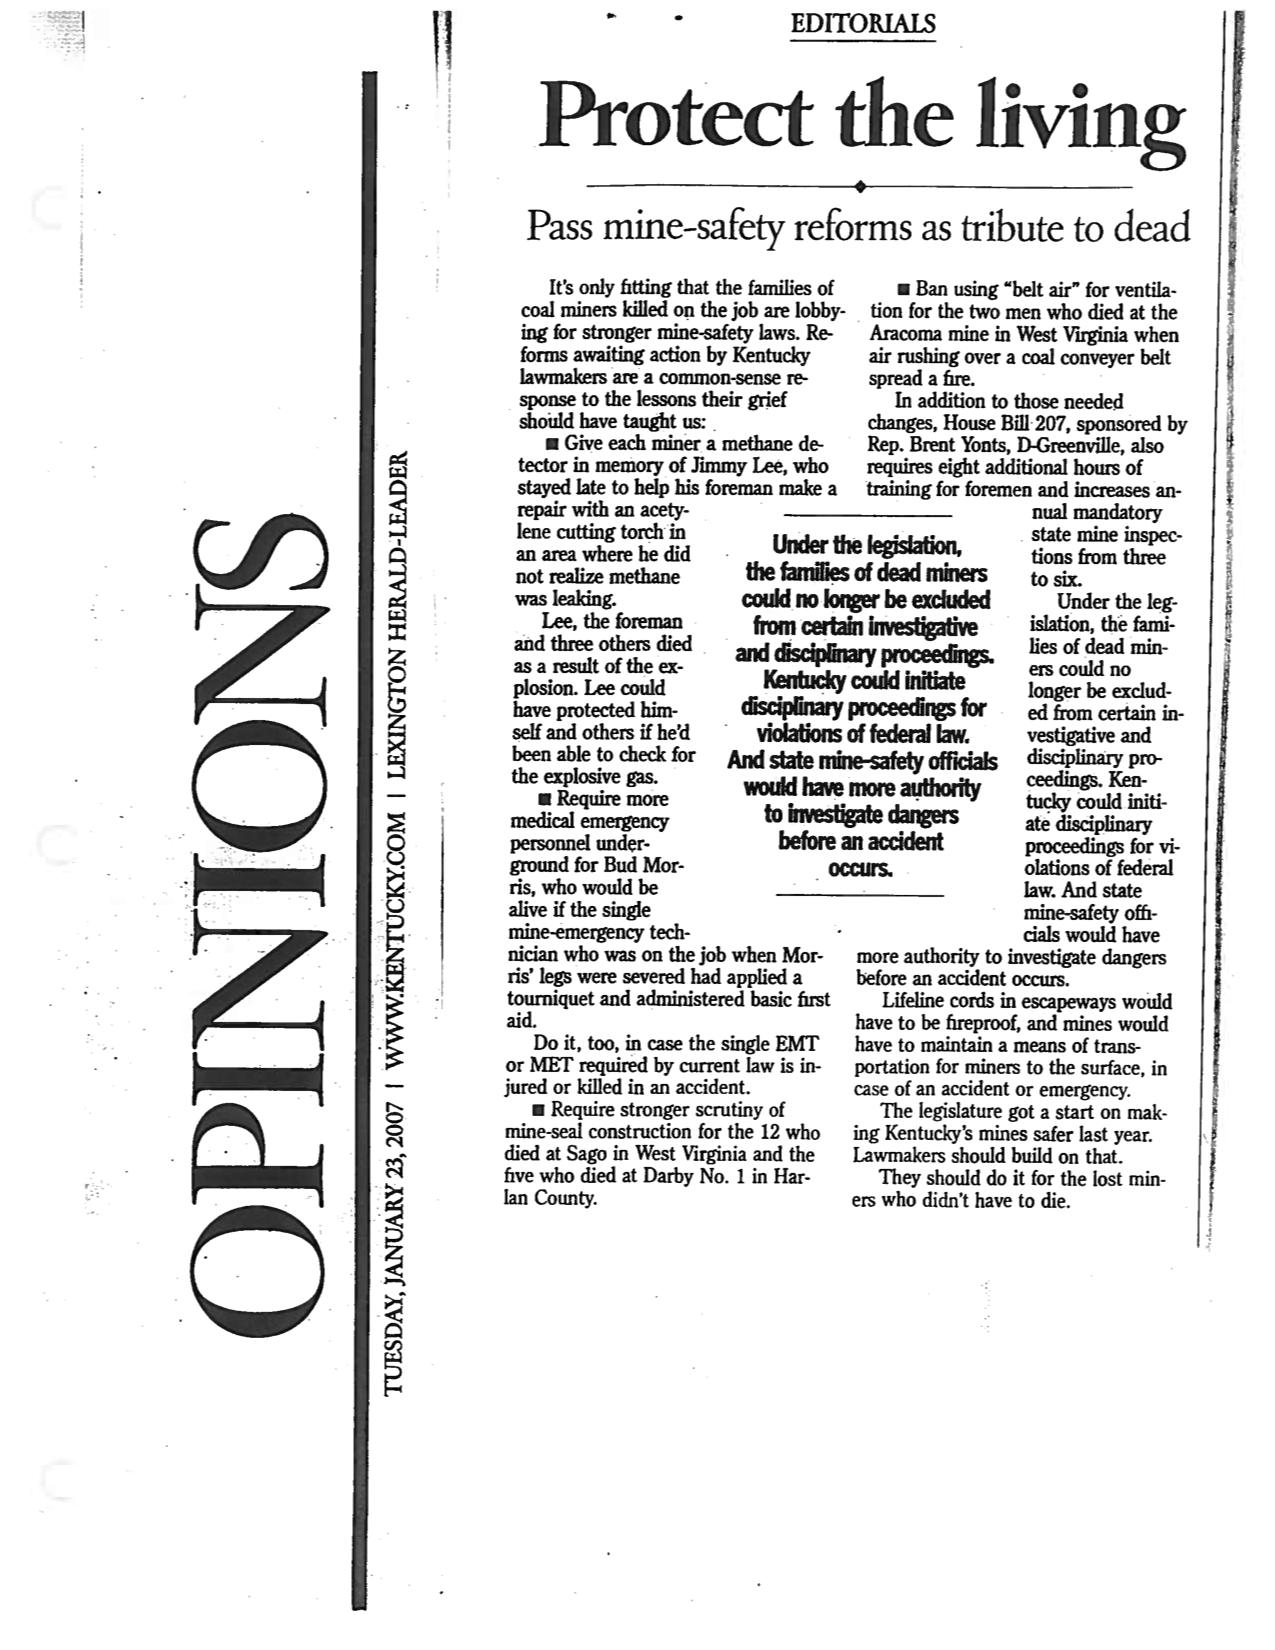 An editorial from the Lexington Herald-Leader, challenging lawmakers to pass mine safety legislation as a tribute to miners who have died on the job. [Click to expand]